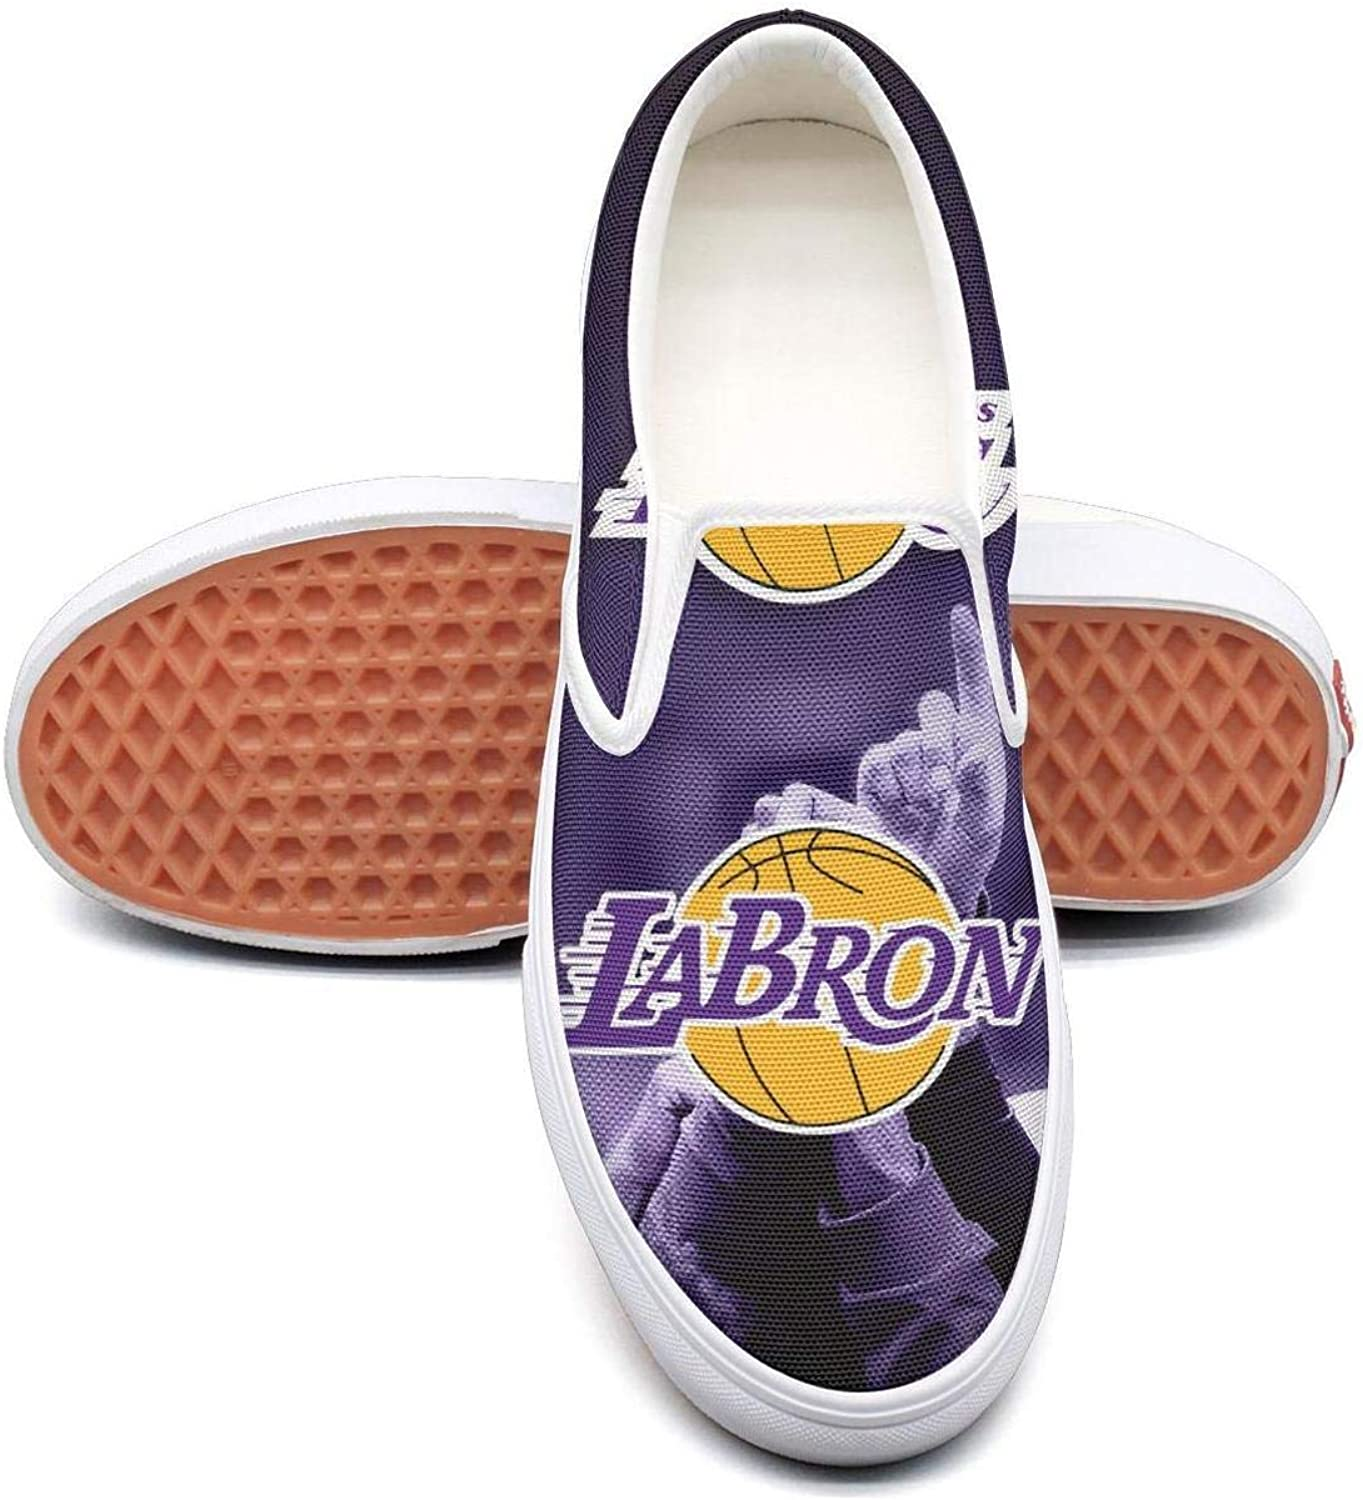 A-Jamee La_Bron_Yellow_Logo_Basketball Womens Funny Canvas Slip-ONS Travel shoes